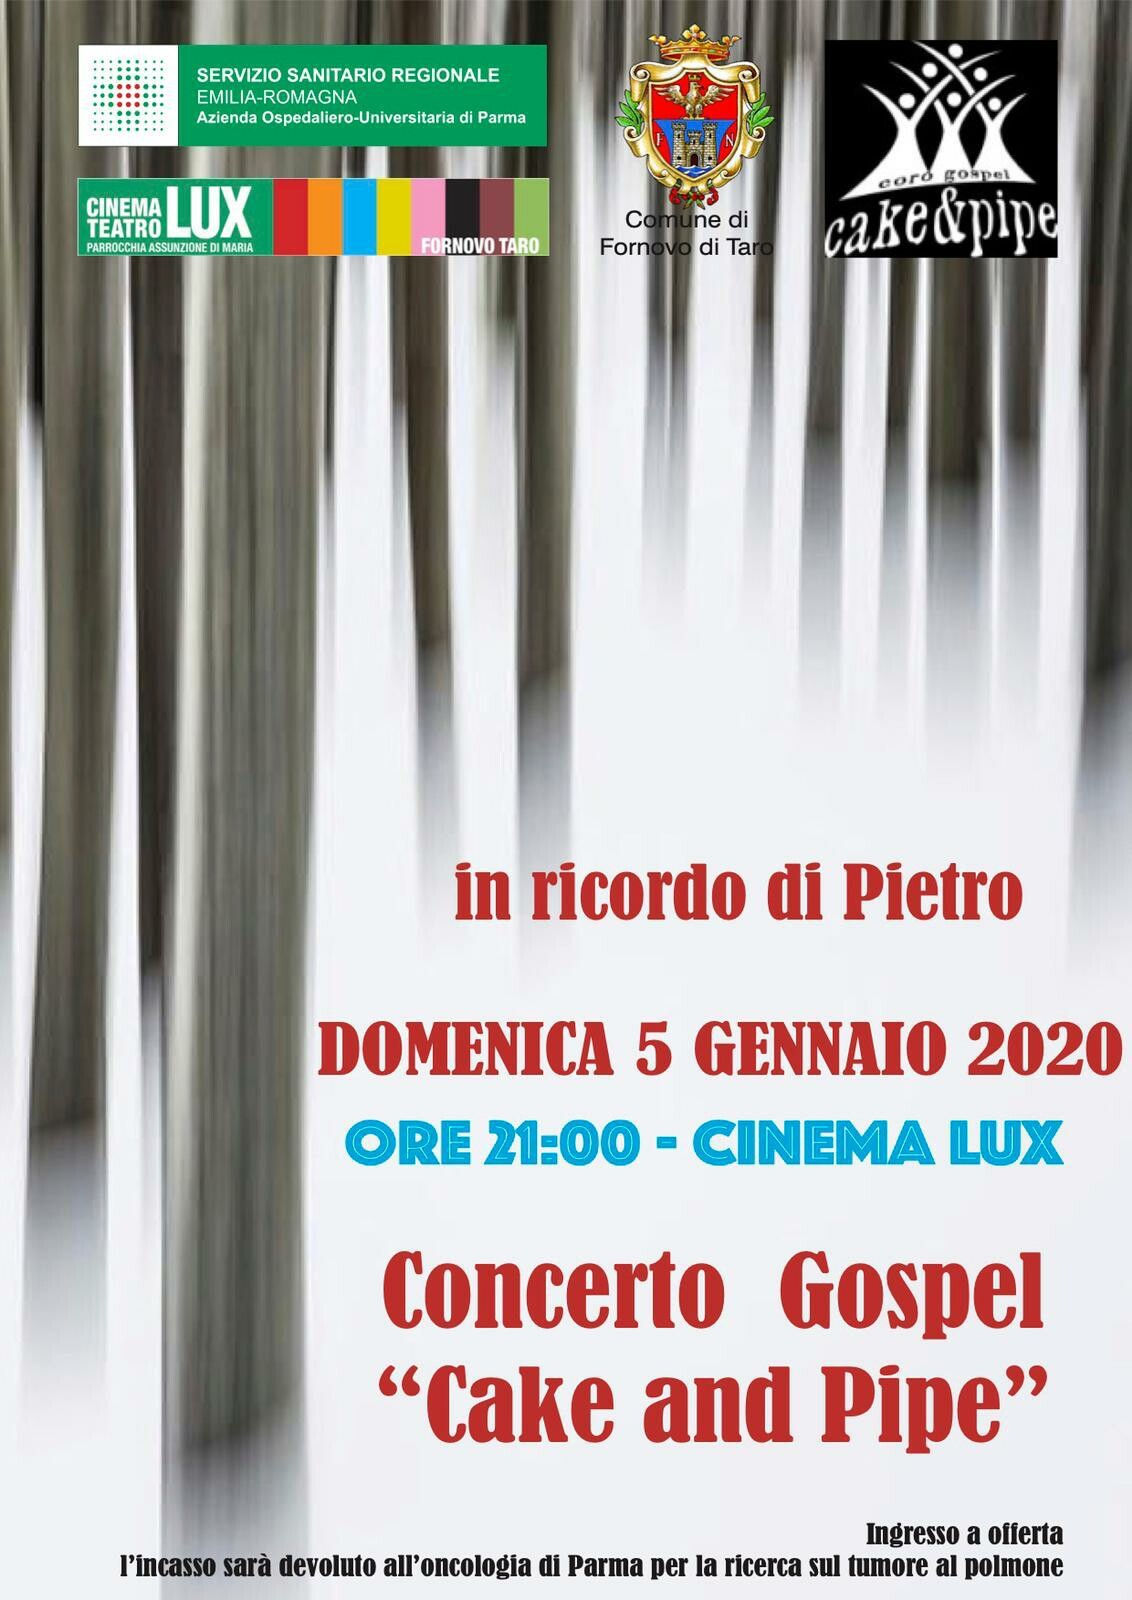 Concerto gospel dei Cake and Pipe Evento speciale, in ricordo di Pietro Gardelli. al cinema LUX